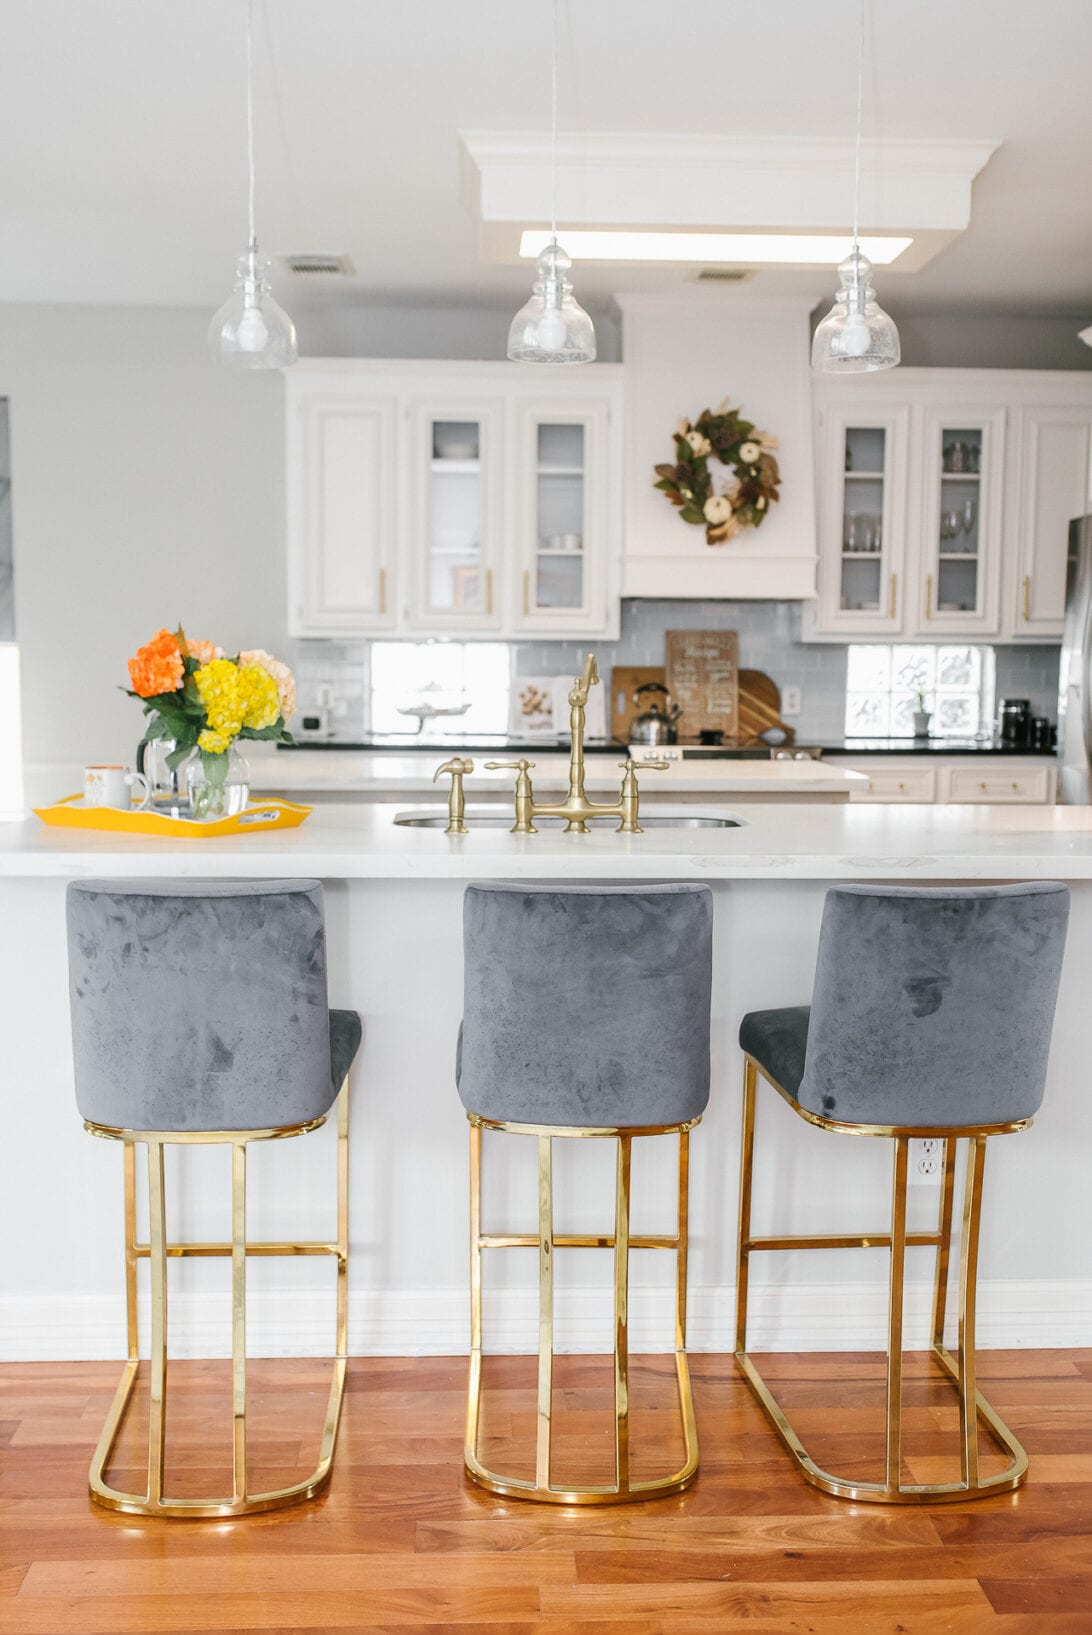 "Noah Seppich 26"" Bar Stool, white countertops, high bar stool, counter bar stools, kitchen remodel, home design, home furniture"